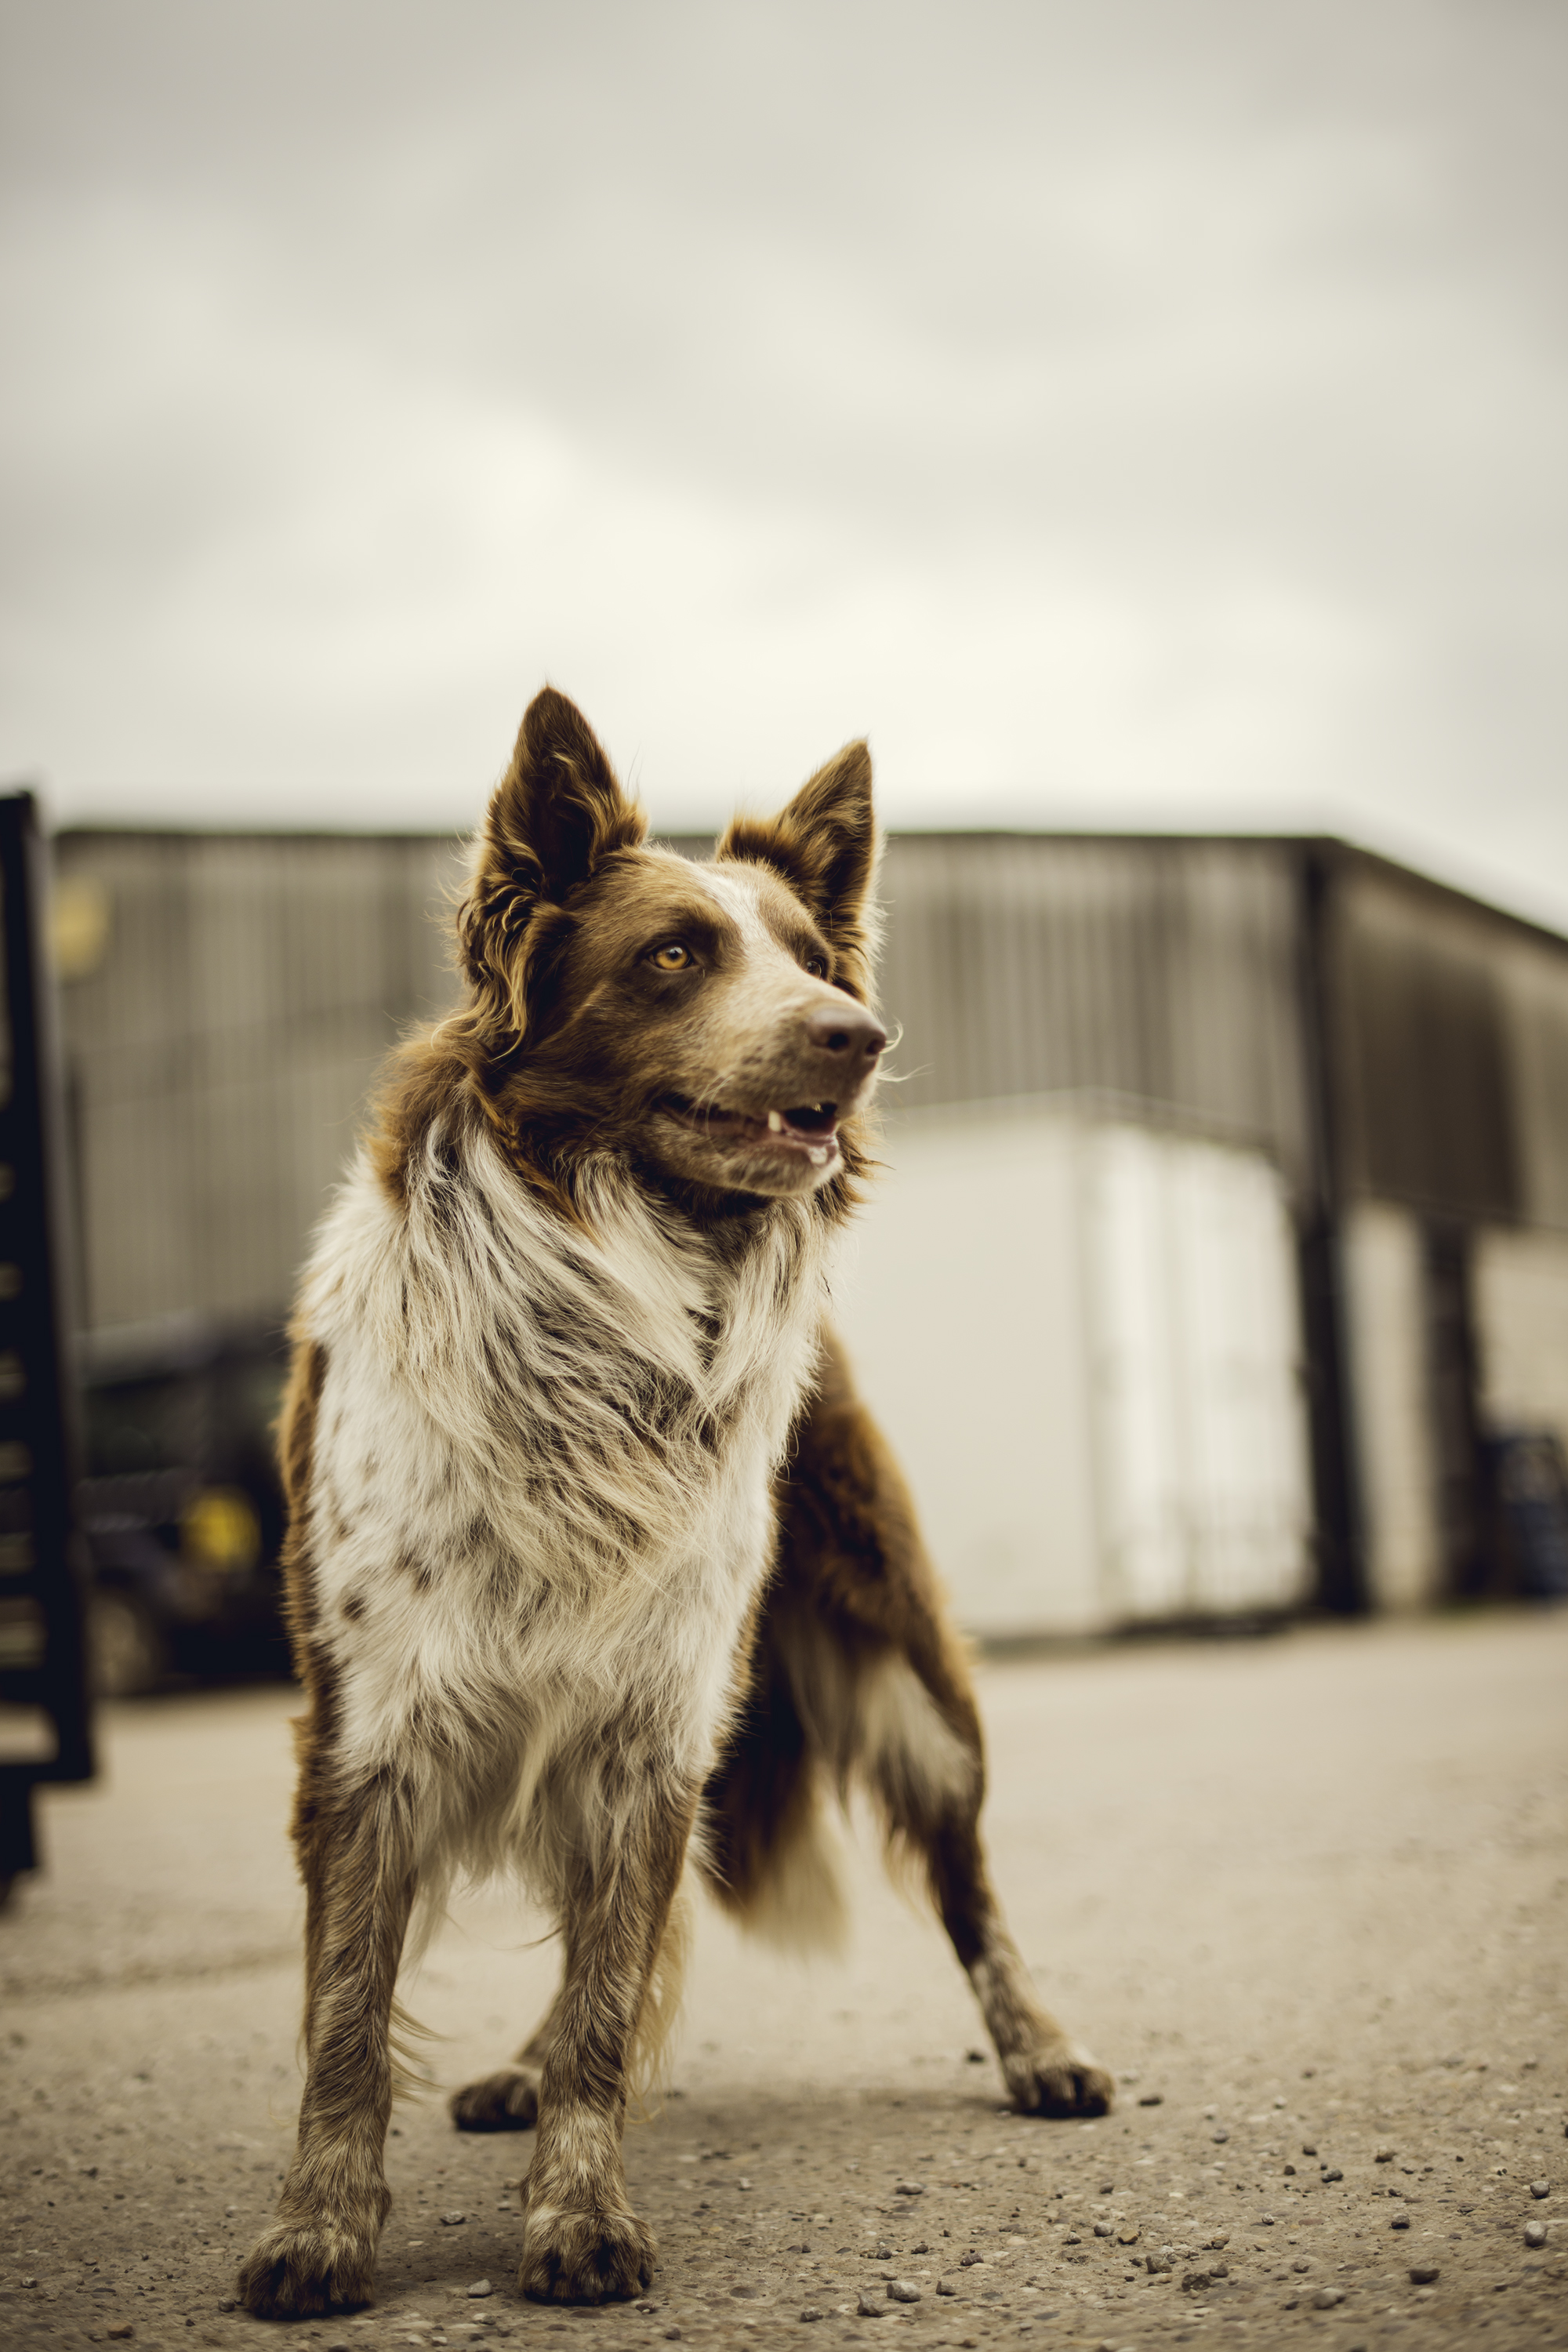 Lennie the farm dog